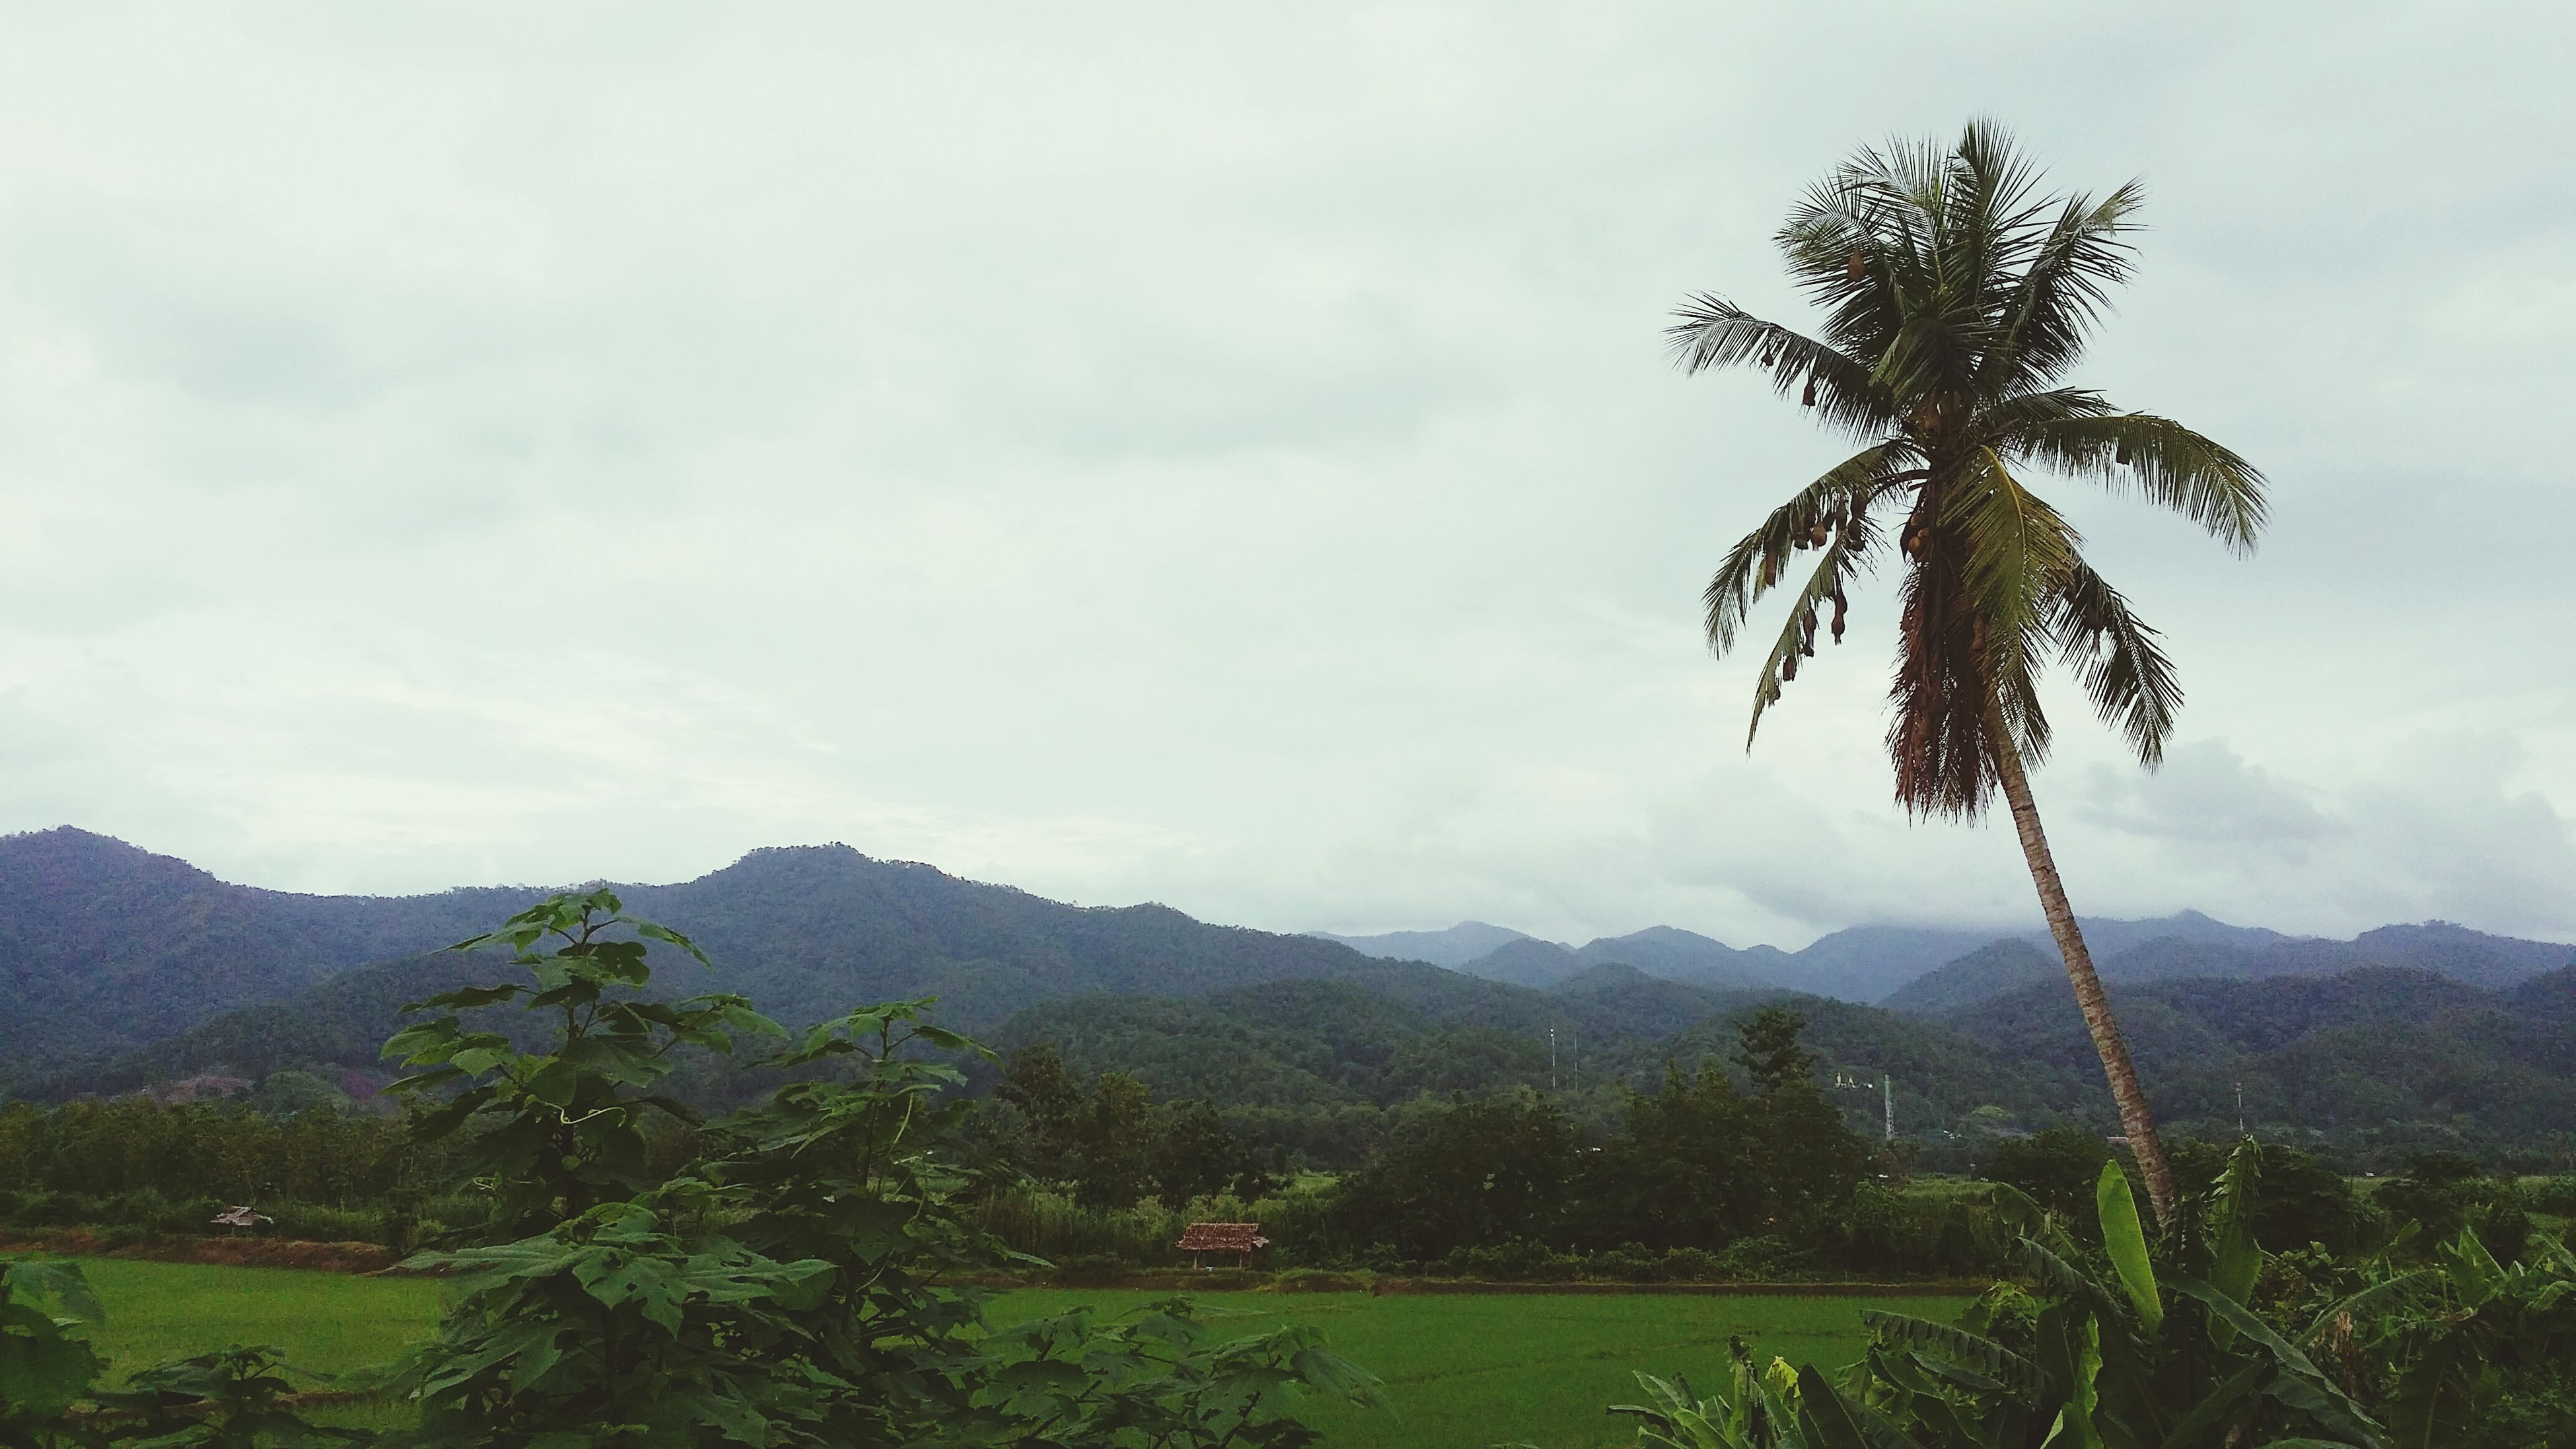 mountain, tree, sky, tranquility, mountain range, tranquil scene, landscape, beauty in nature, growth, scenics, nature, palm tree, cloud - sky, green color, cloud, cloudy, non-urban scene, field, plant, hill